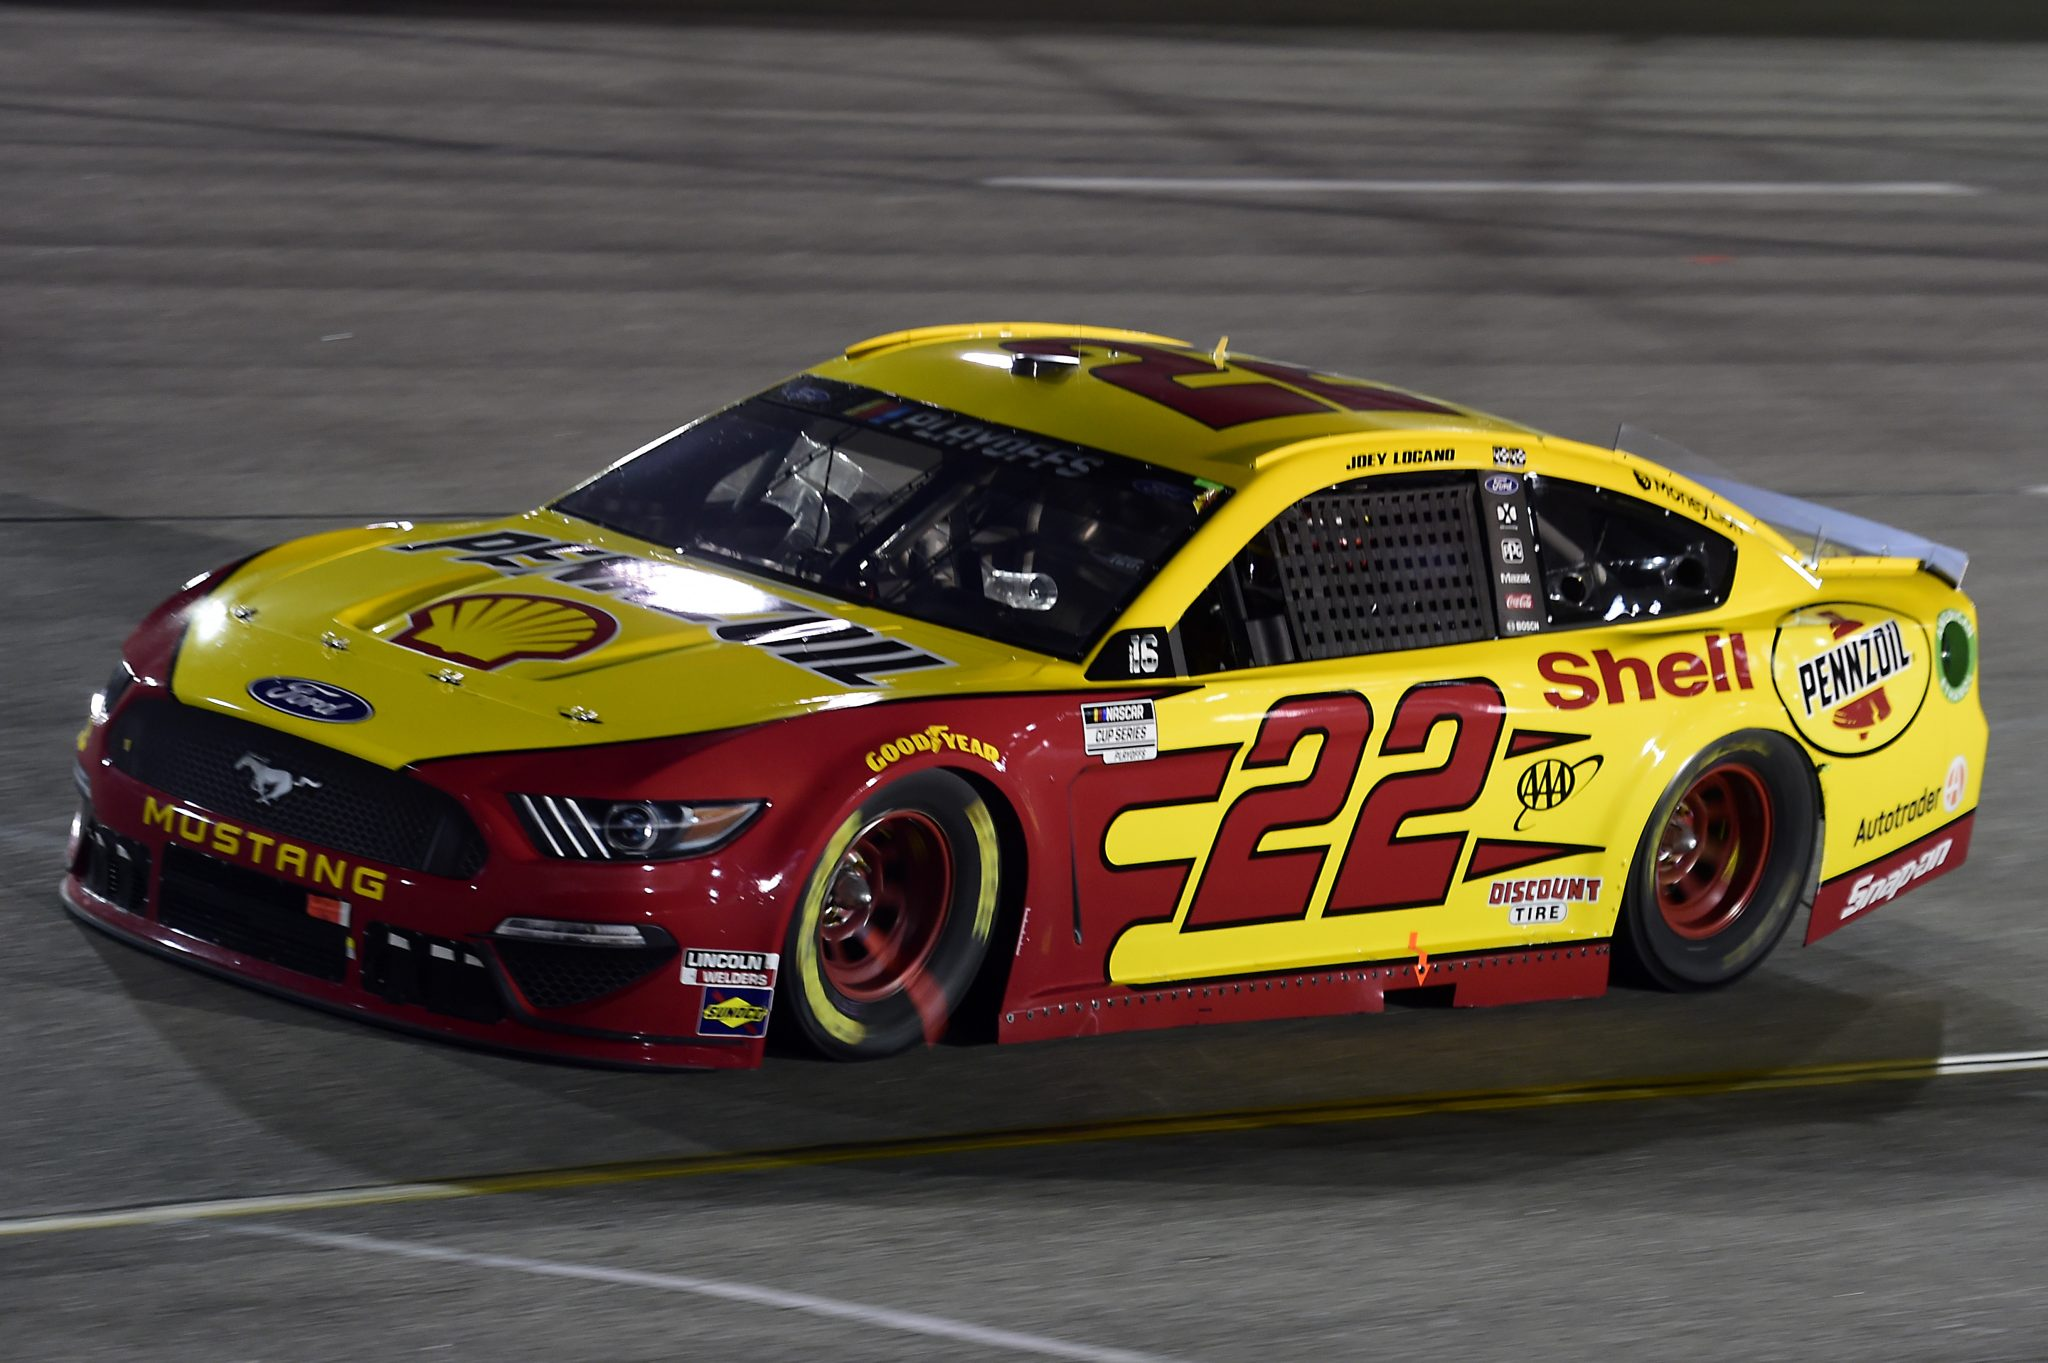 RICHMOND, VIRGINIA - SEPTEMBER 12: Joey Logano, driver of the #22 Shell Pennzoil Ford, drives during the NASCAR Cup Series Federated Auto Parts 400 at Richmond Raceway on September 12, 2020 in Richmond, Virginia. (Photo by Jared C. Tilton/Getty Images) | Getty Images